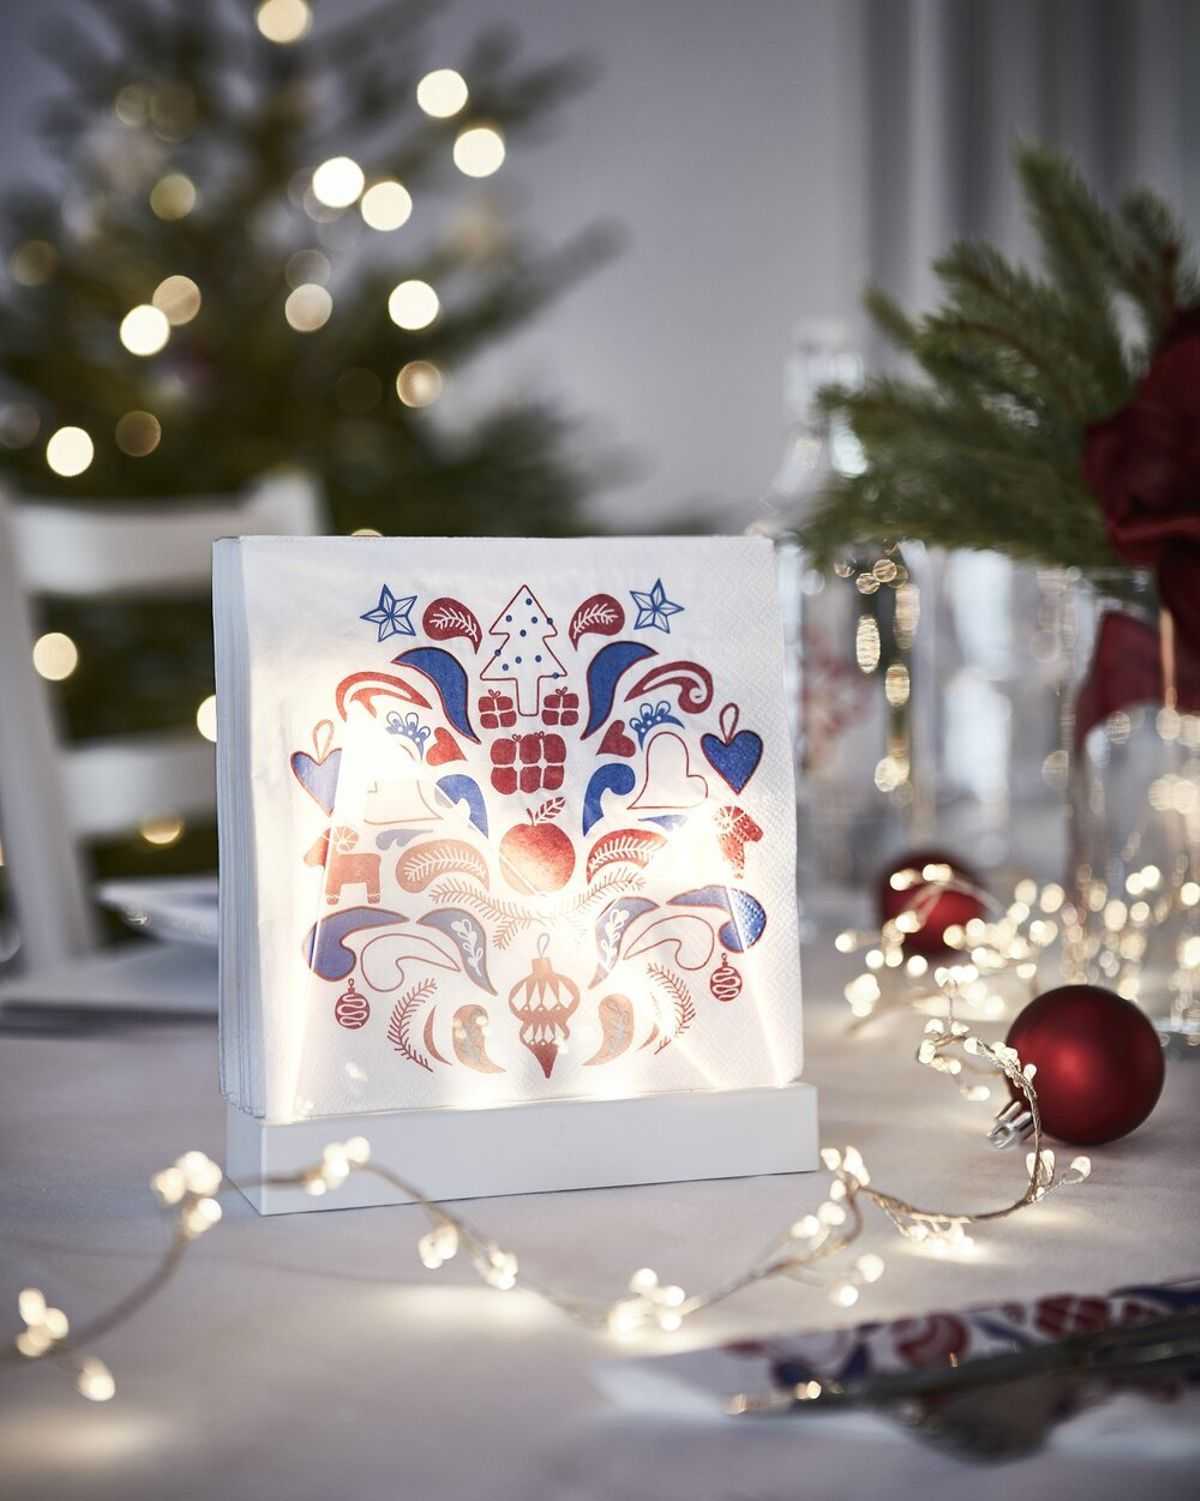 Ikea News To Decorate Your Home For Christmas Christmas Day Christmas Day Decorate Home Ikea News In 2020 Ikea Christmas Ikea New Christmas House Lights